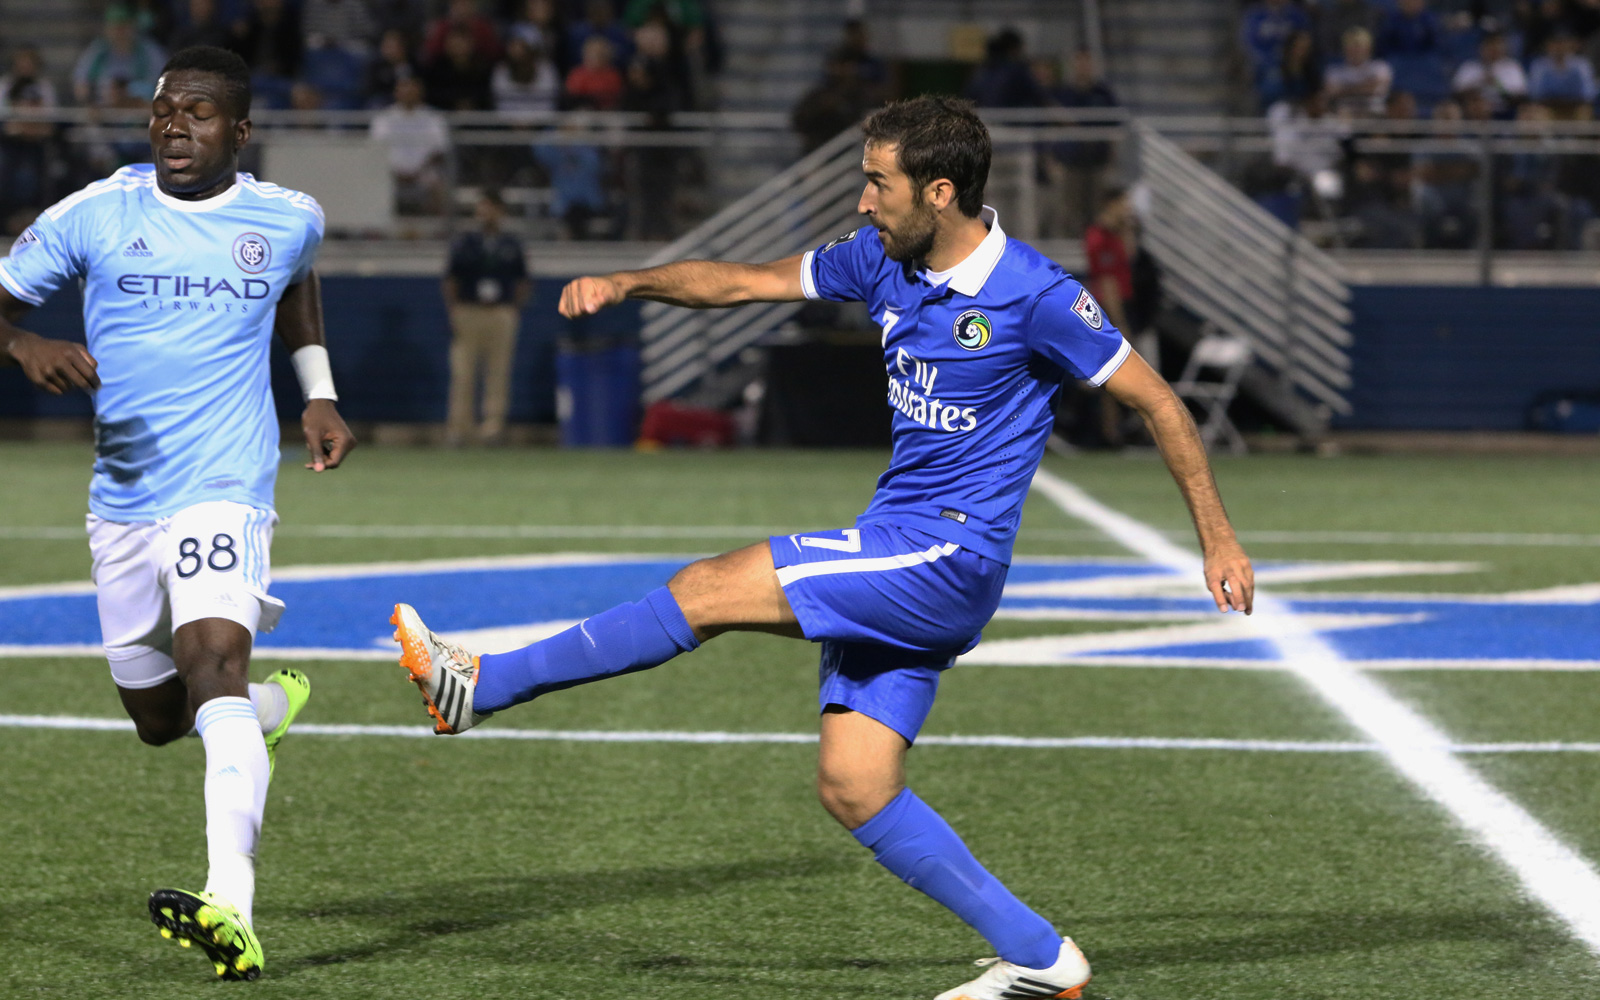 In the 57th minute of their U.S. Open Cup fourth-round match, Cosmos star attacker Raul (7) moves the ball into the attacking third, slipping it past midfielder Kwadwo Poku (88), NYCFC's man of the match.